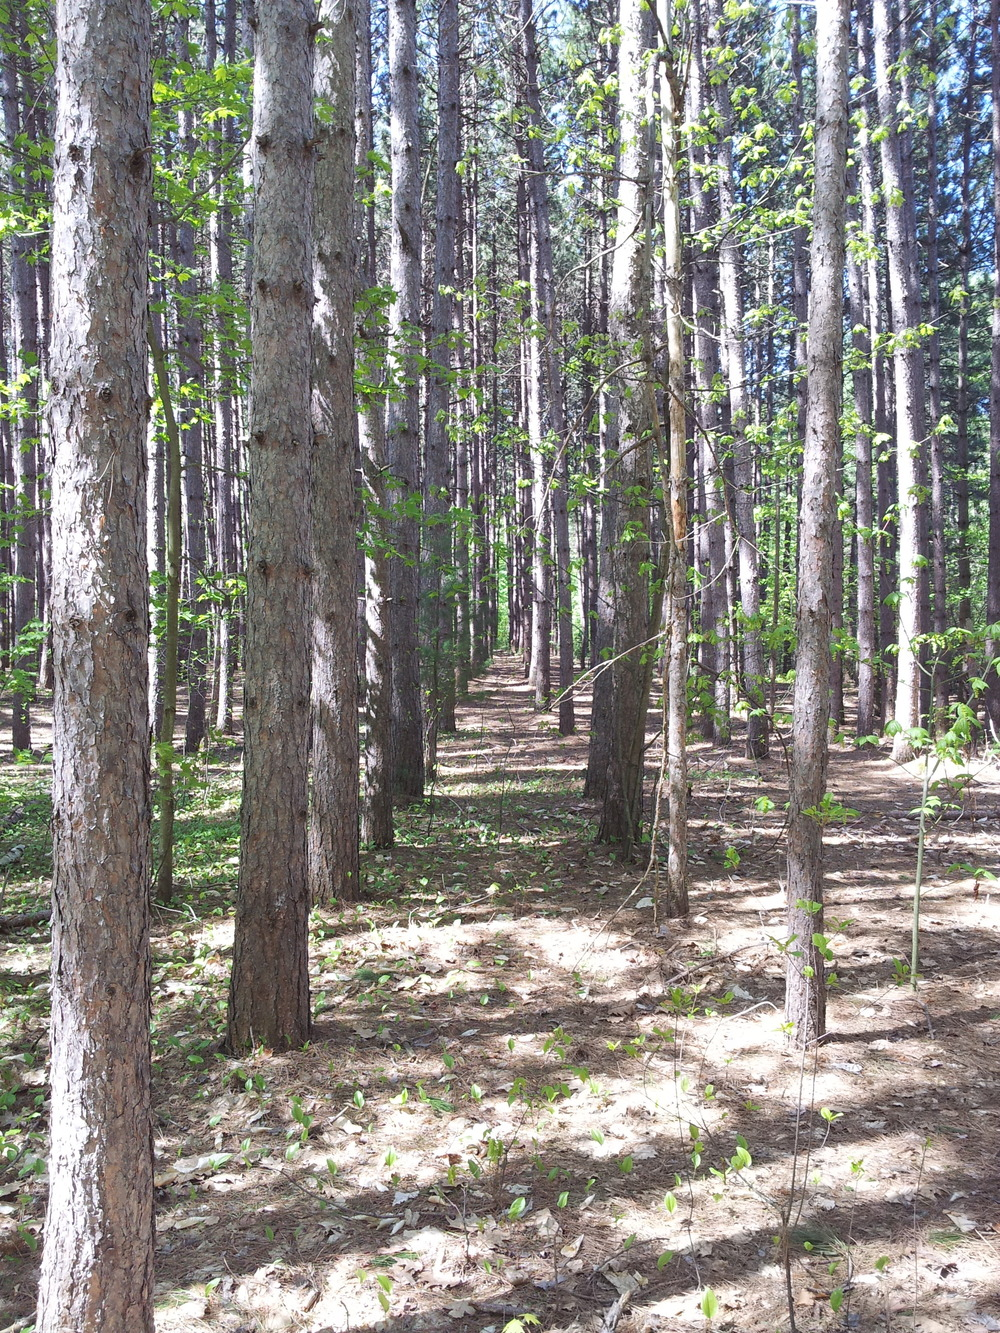 Replanted Canadian forest. So orderly! (Muskoka, 2013)